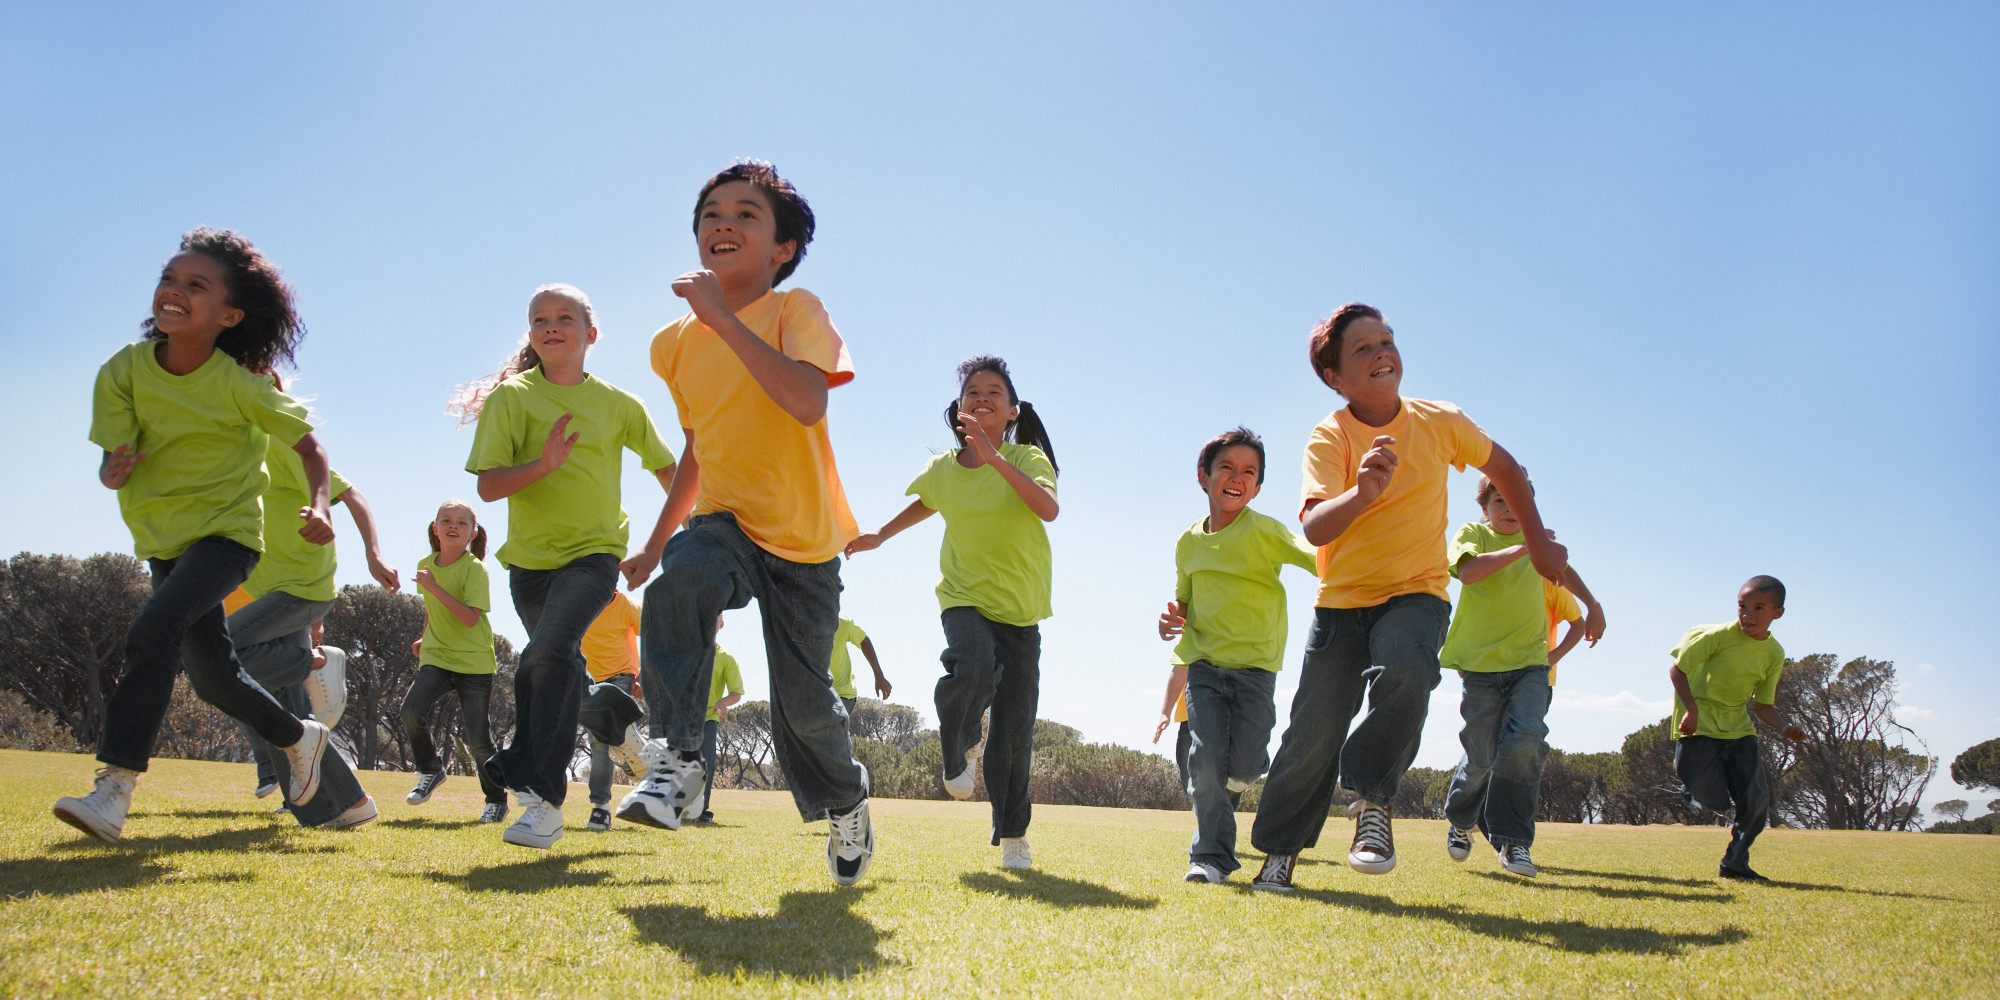 4 Reasons Why Your Kids Should Play Sports